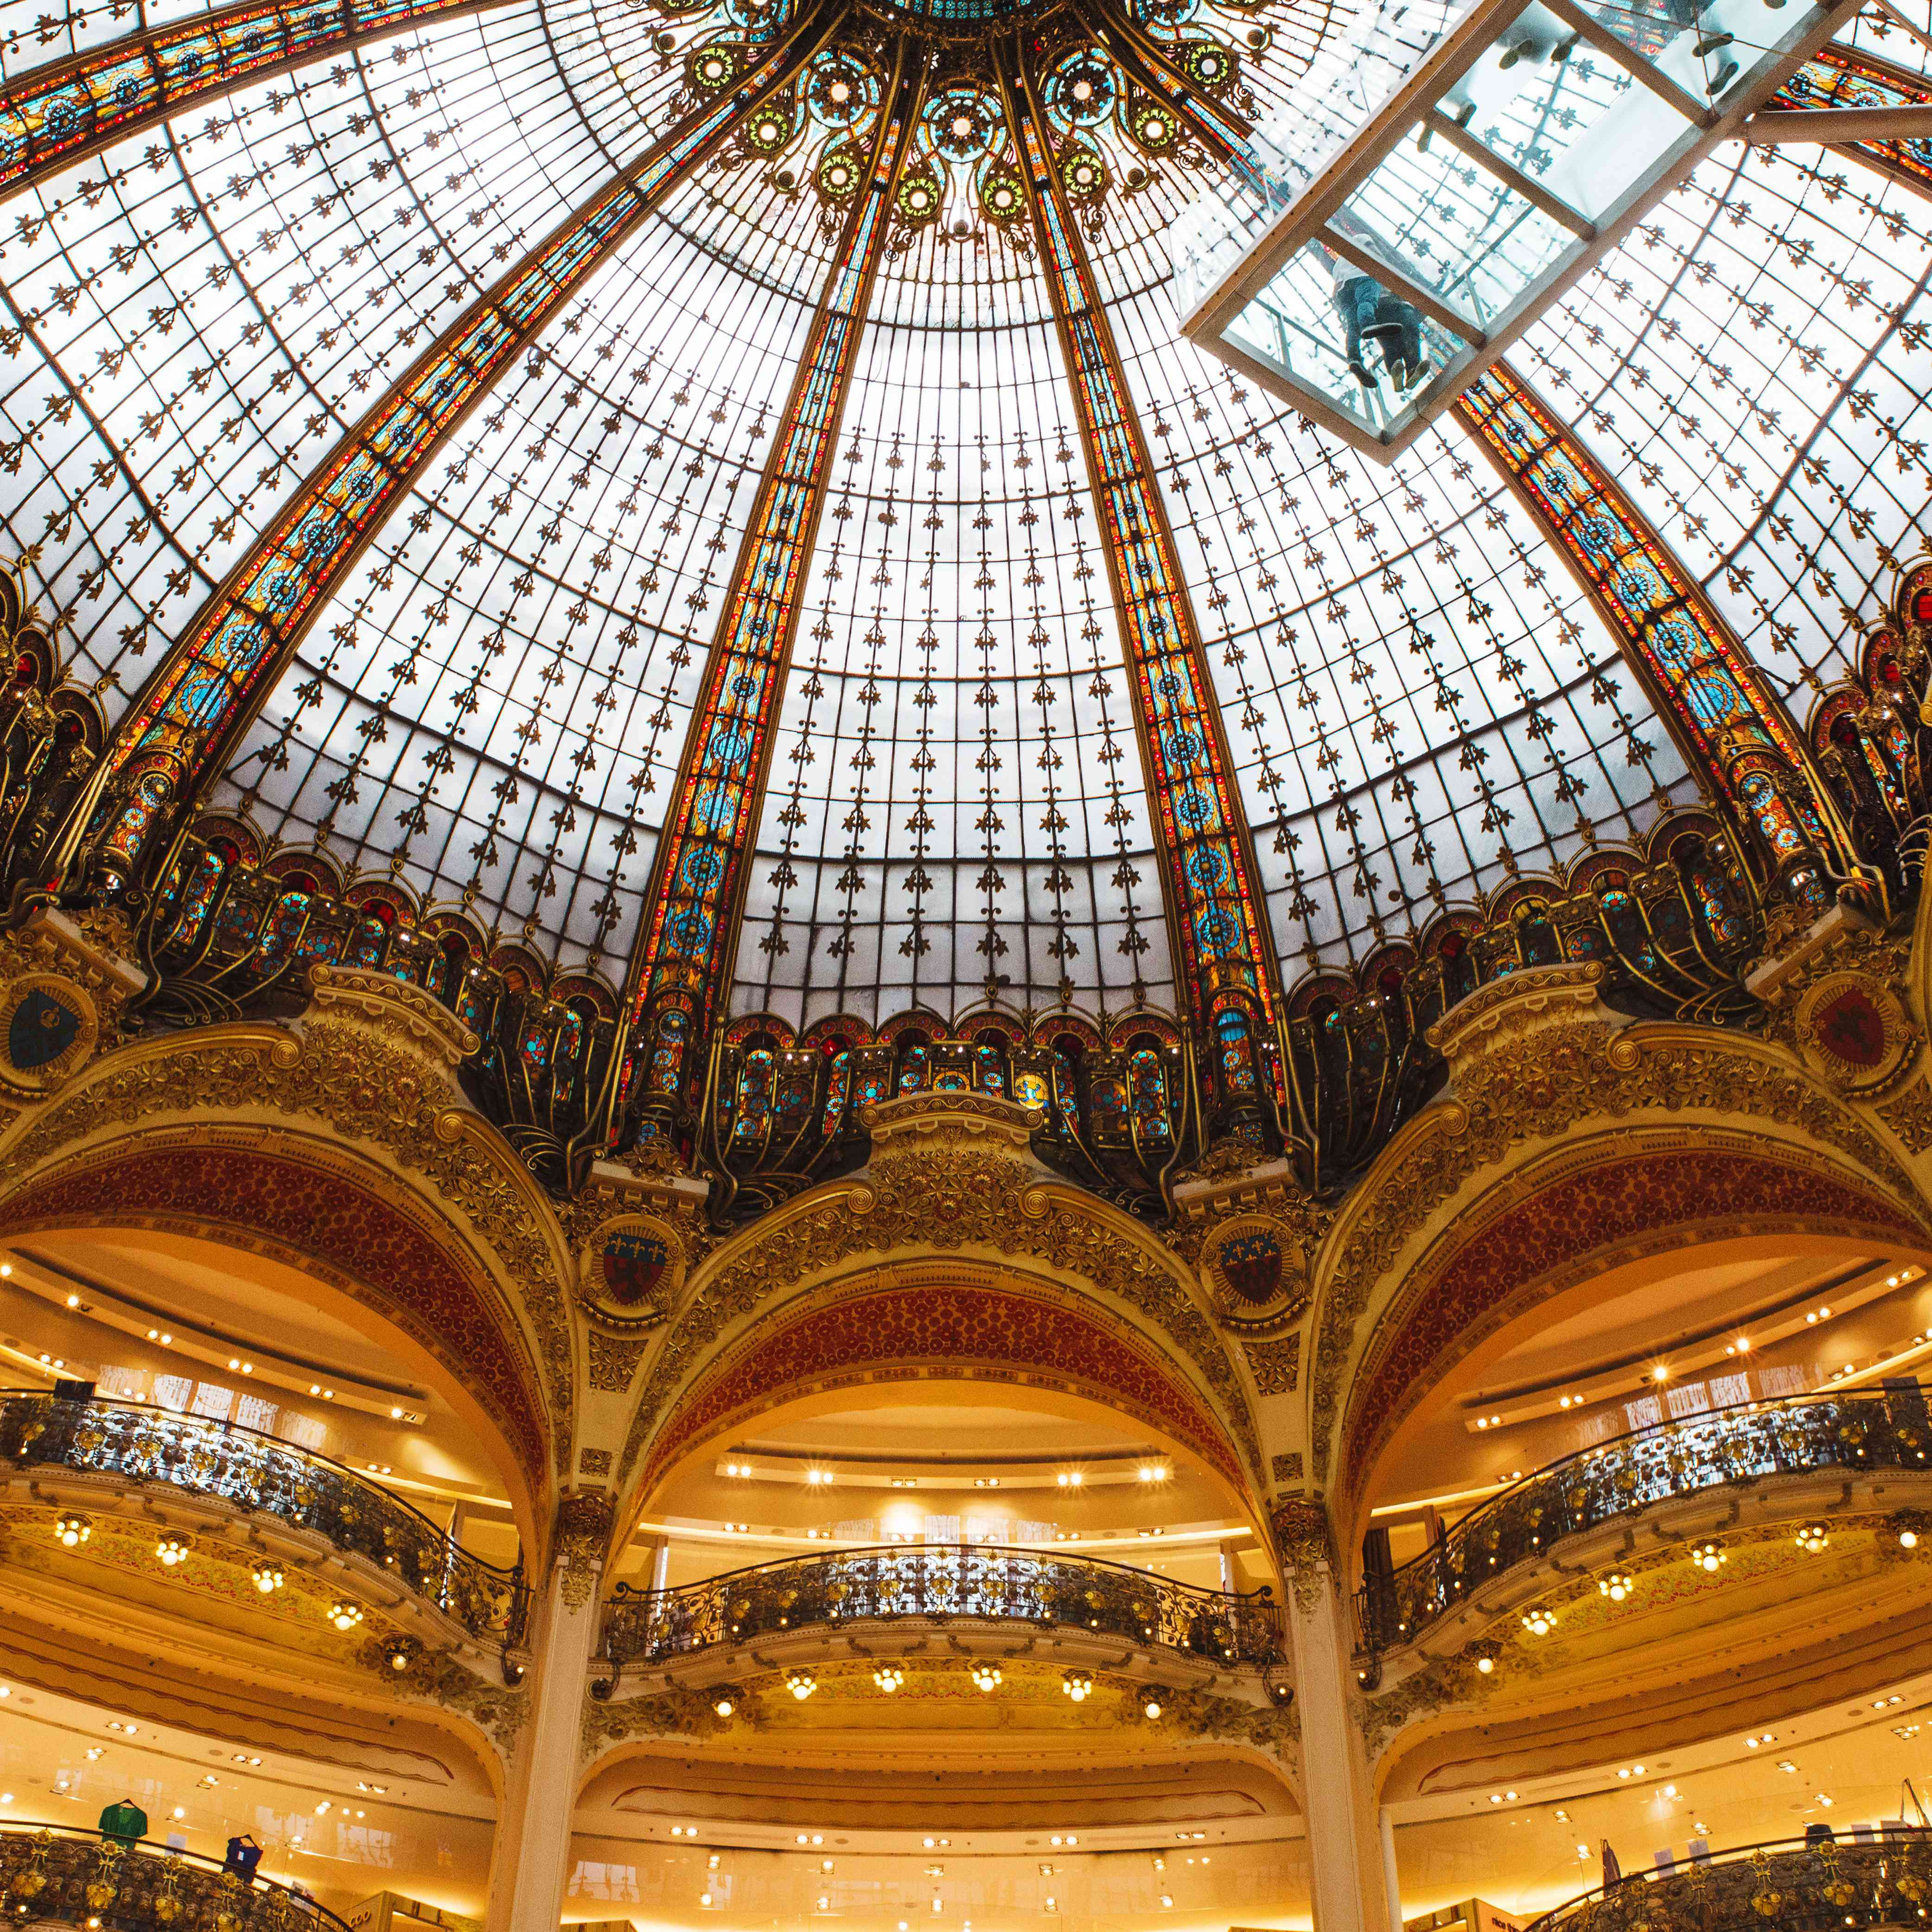 The arched dome in Galeries Lafayette